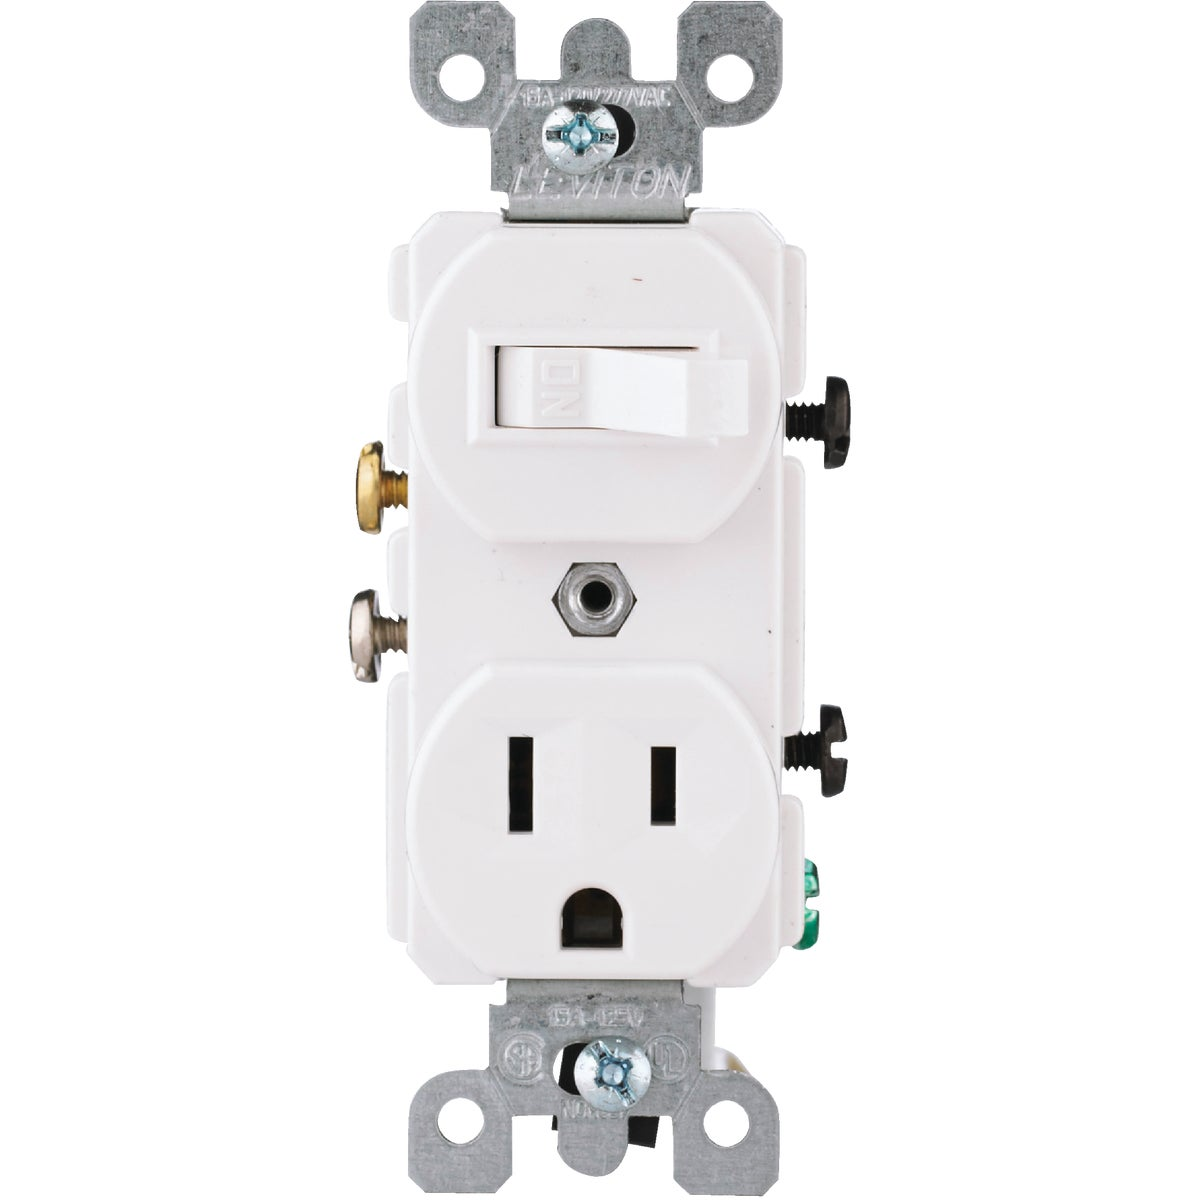 WHT SWITCH/OUTLET - 5225WSP by Leviton Mfg Co